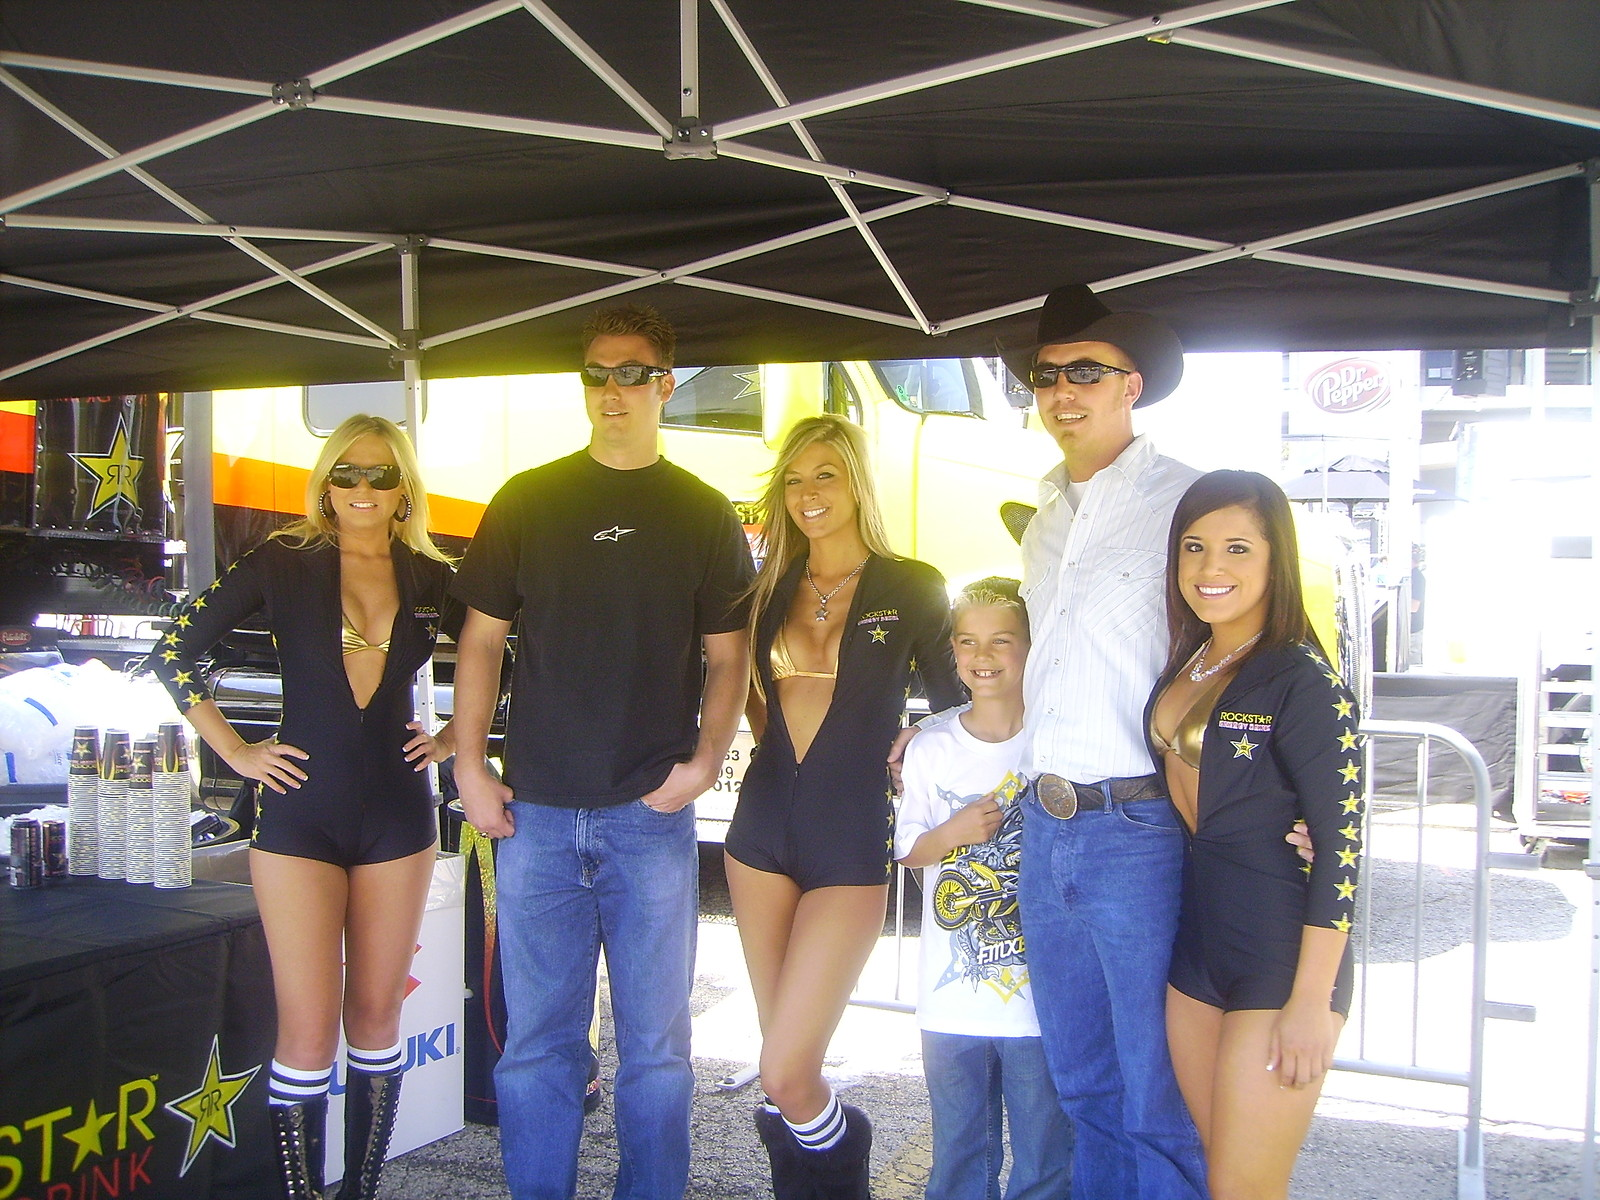 Me and my bro with the rockstar girls - Slim Bill - Motocross Pictures - Vital MX